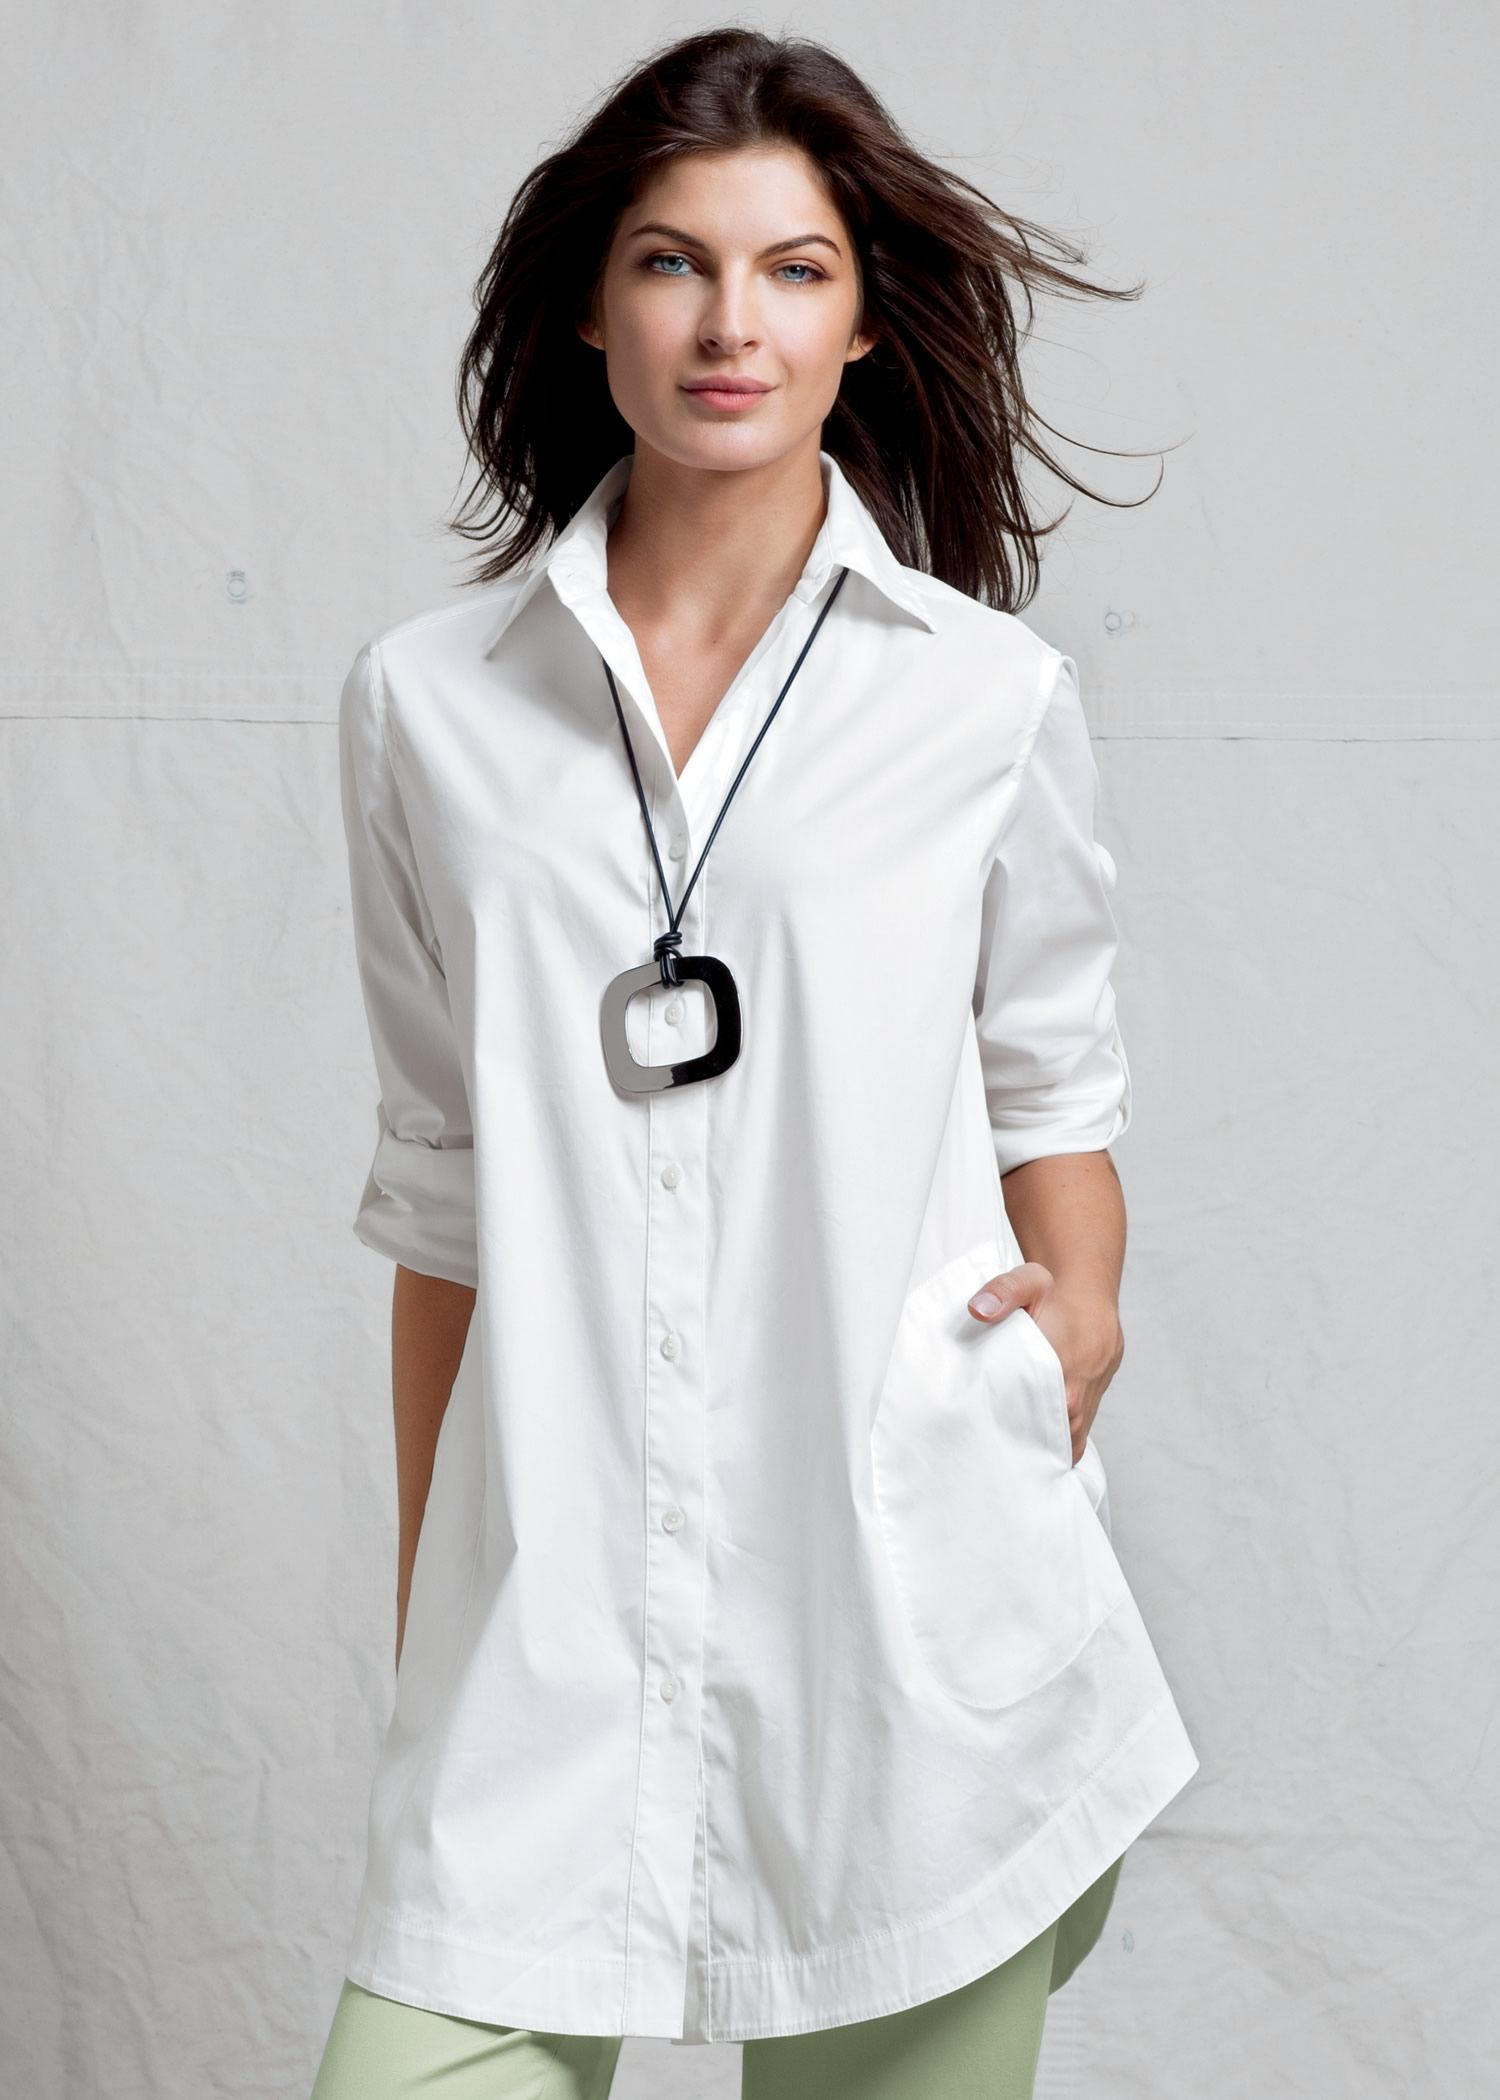 need this big white tunic -length shirt with a shaped hem in my closet for summer....